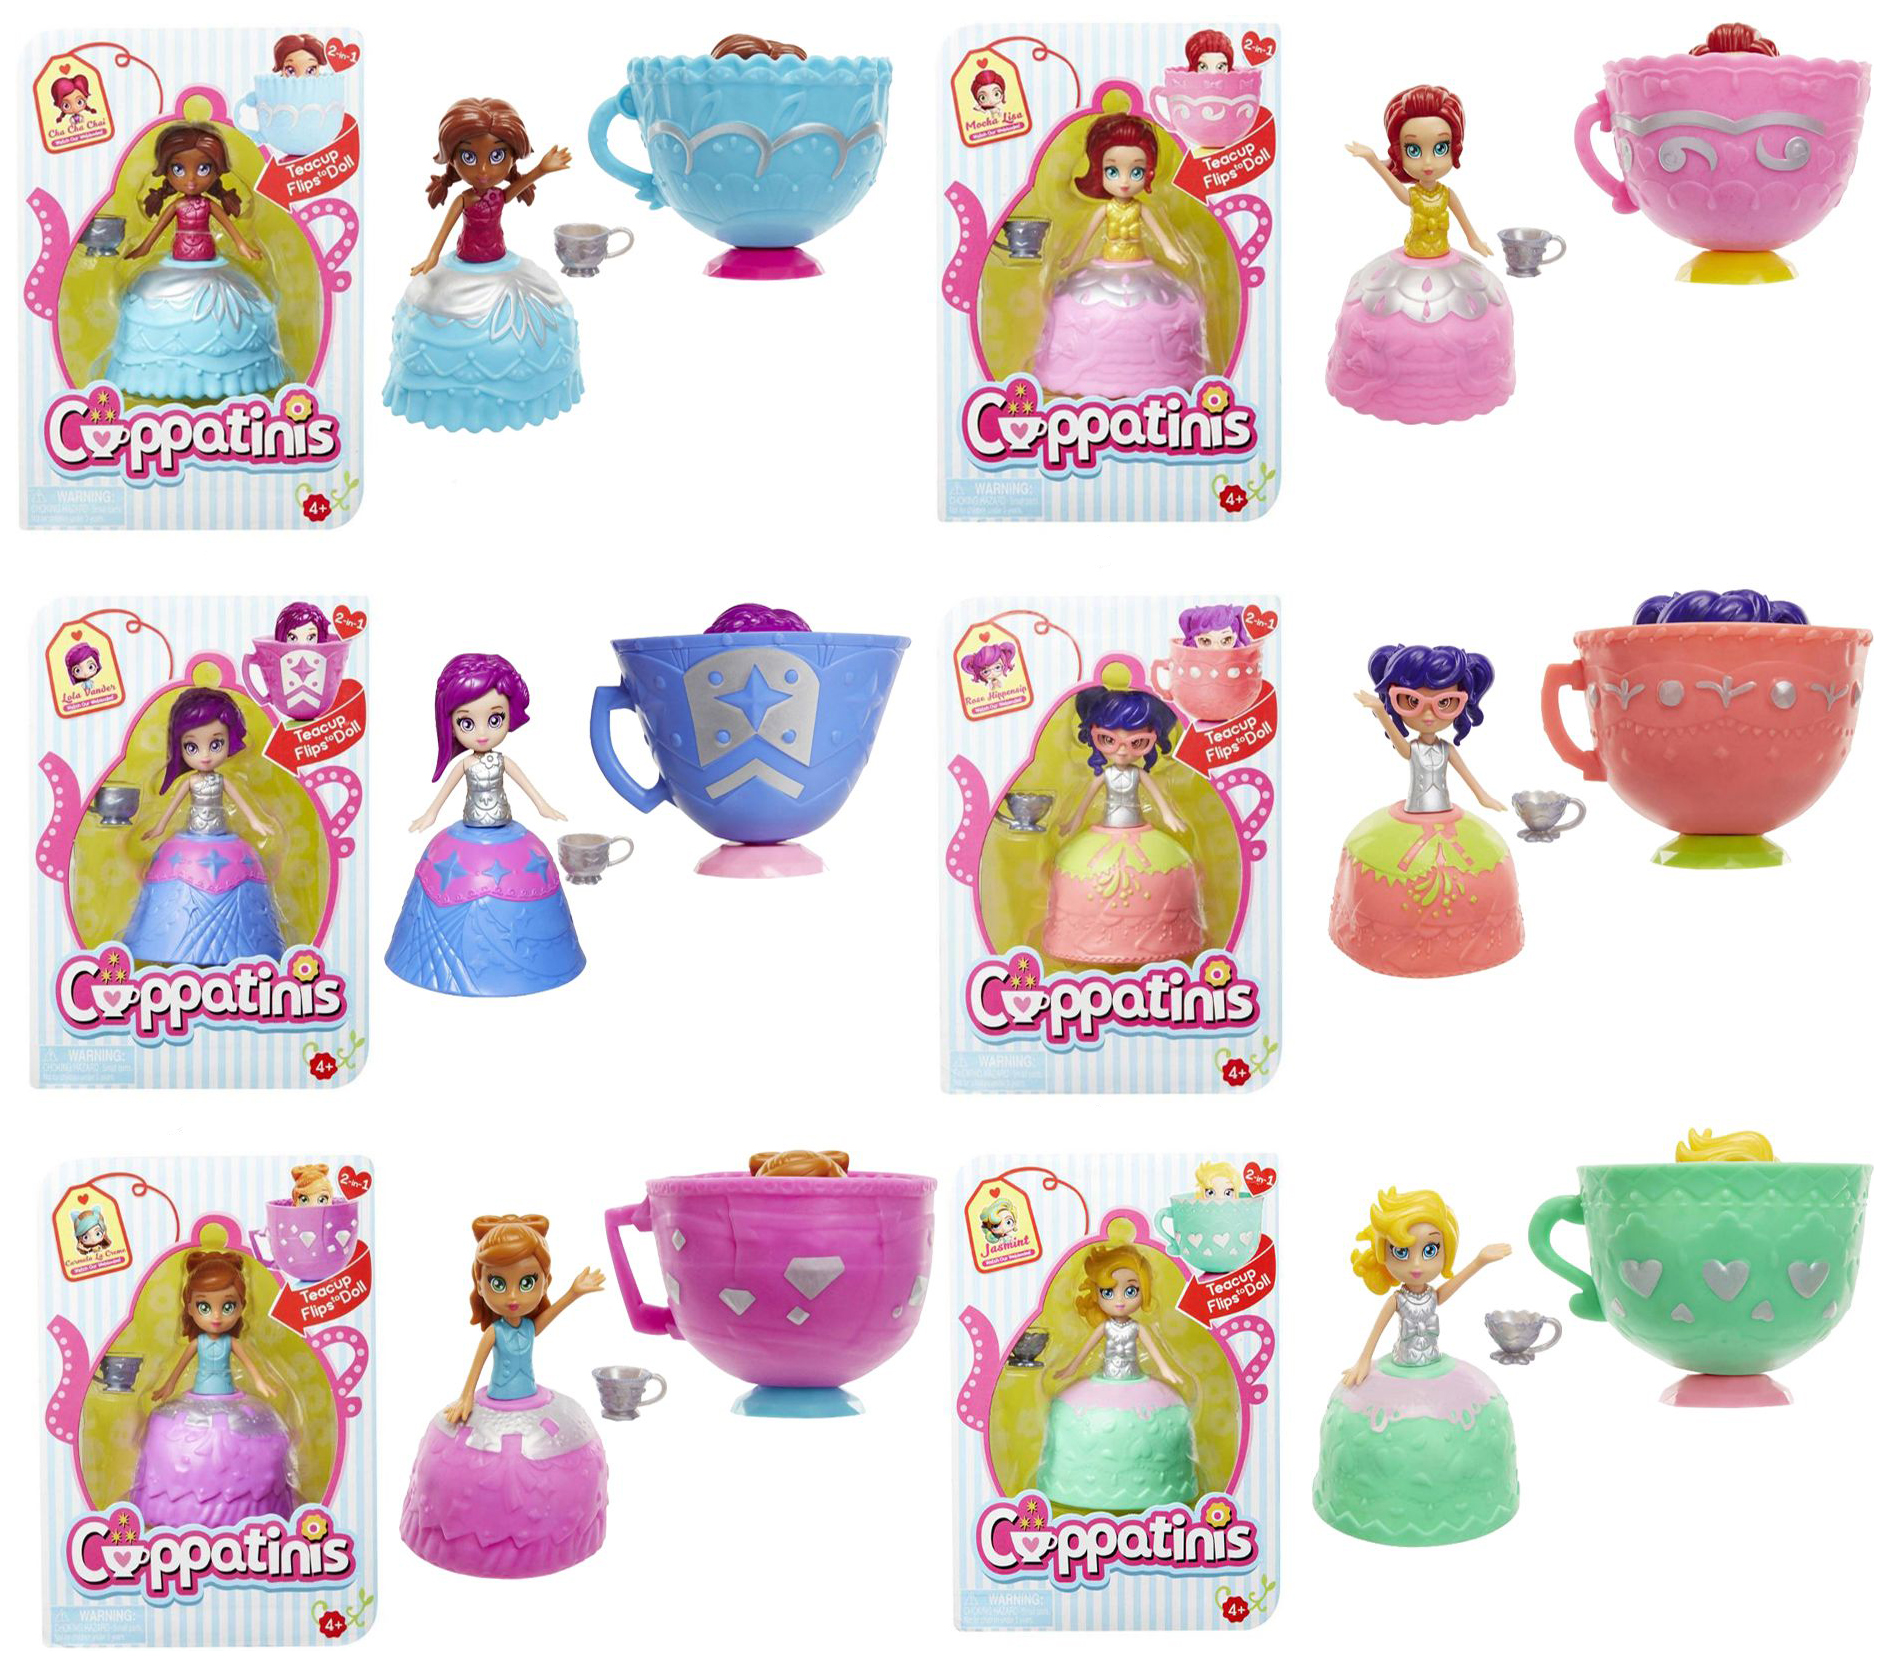 Кукла 1TOY Cuppatinis т10609